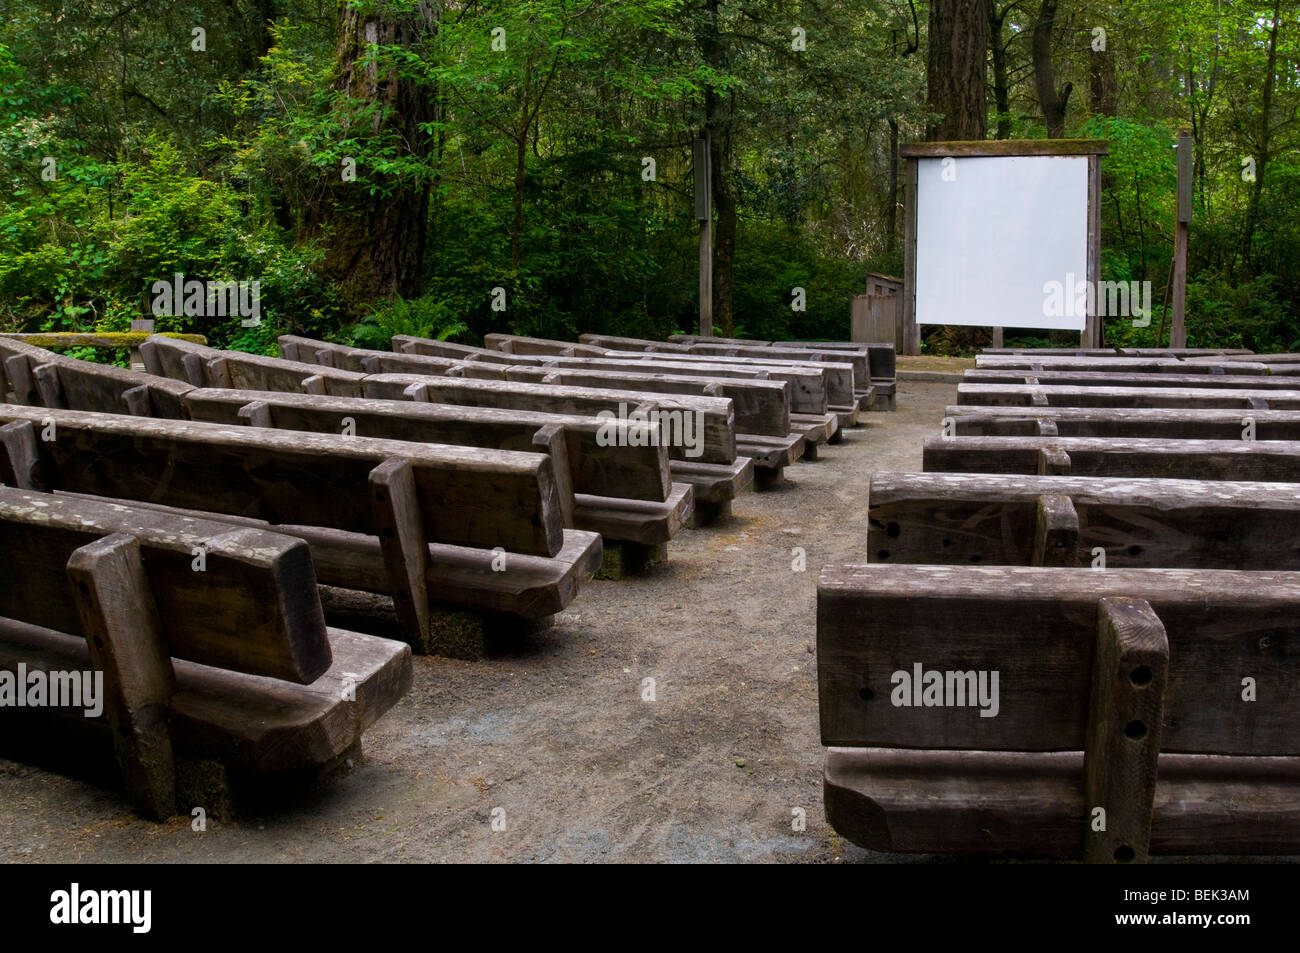 Outdoor amphitheater at the vistor center at Jedediah Smith Redwoods State Park, California - Stock Image